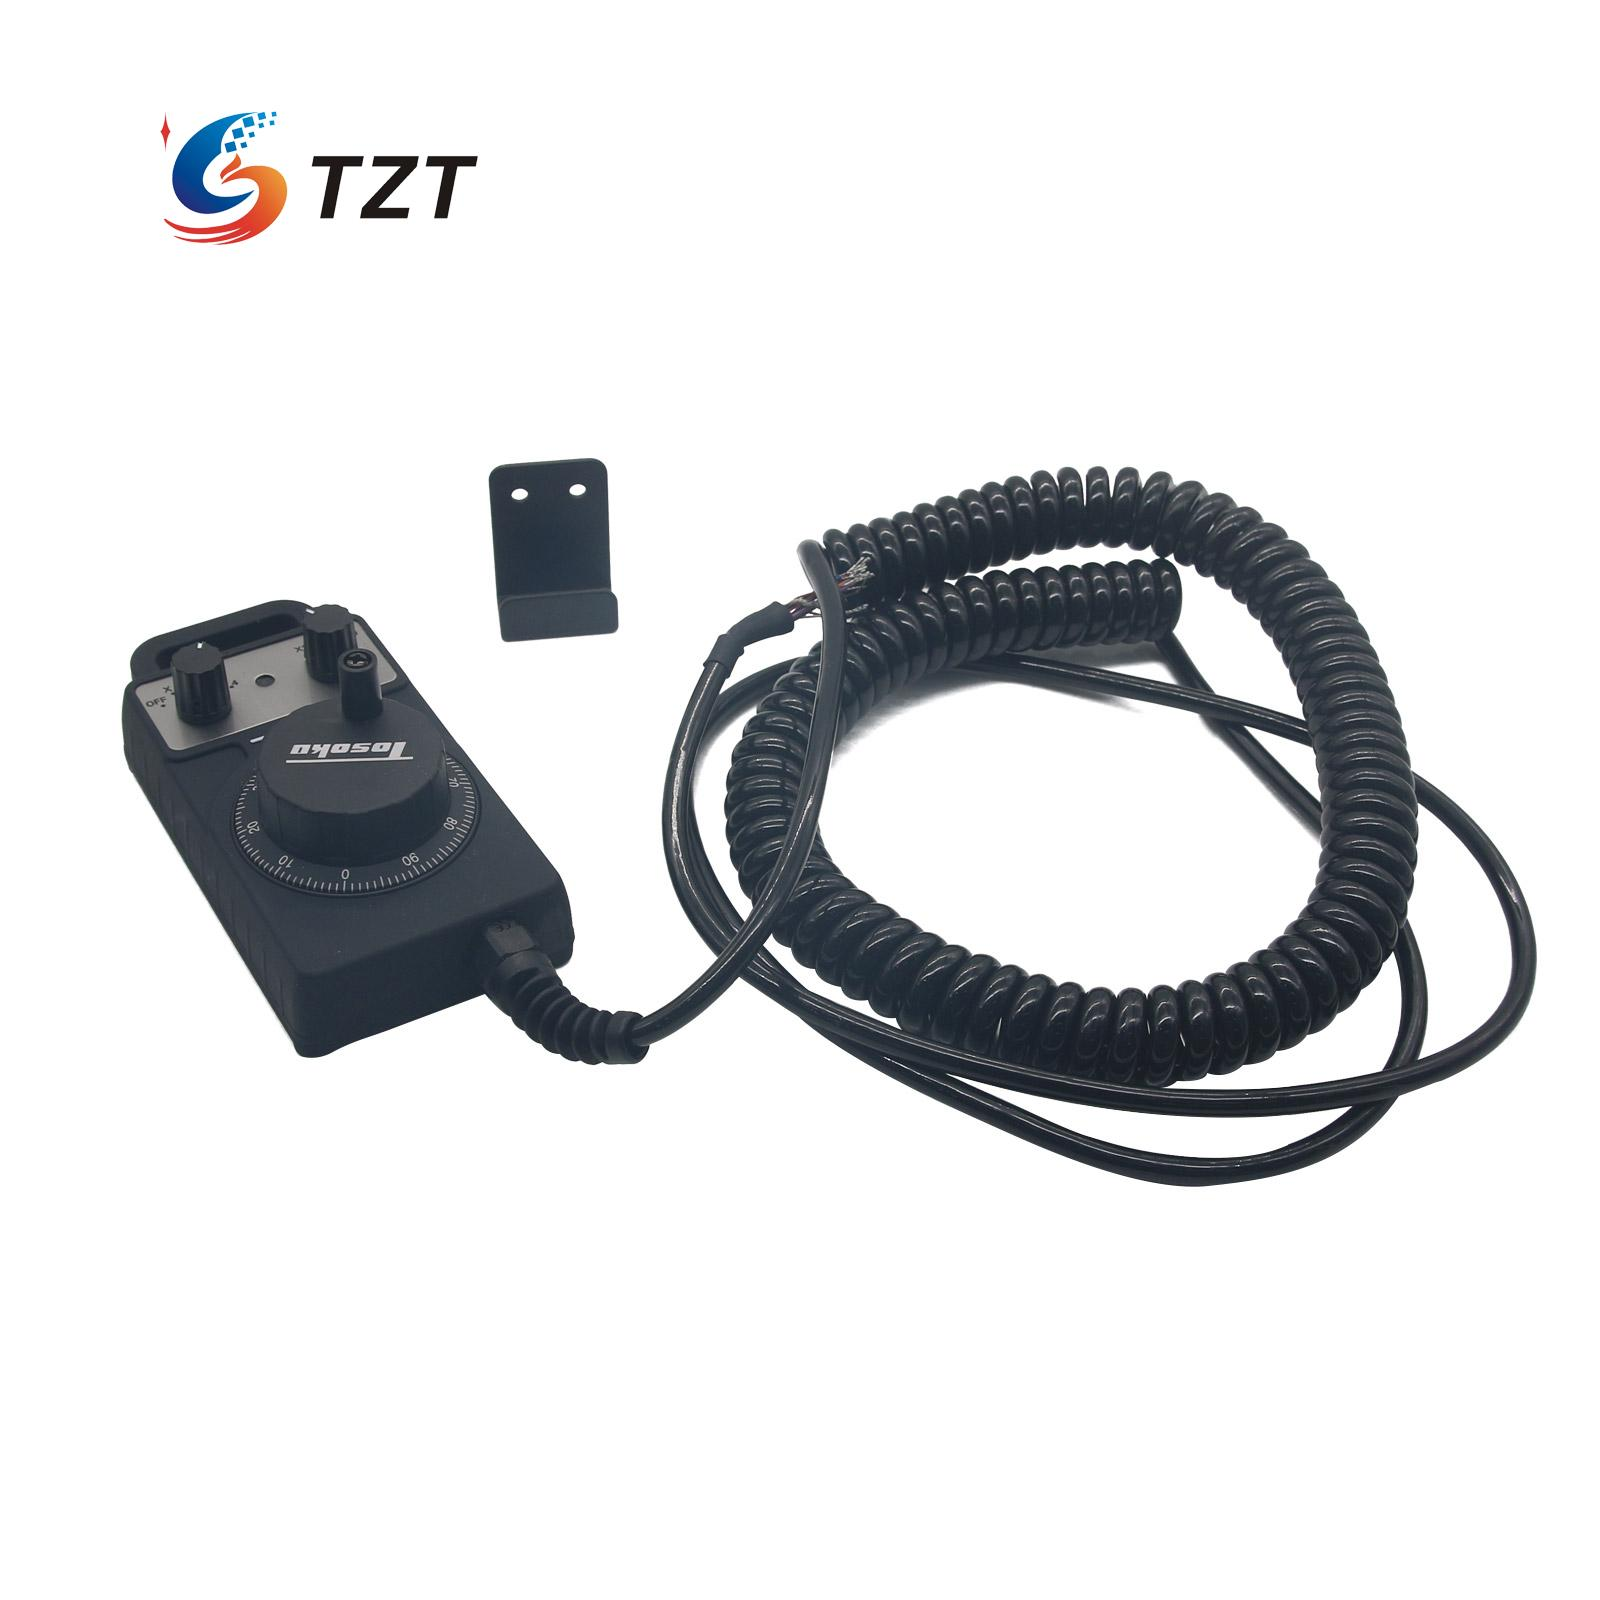 TOSOKU HC115 CNC MPG Handwheel Handle Manual Pulse Generator 5V 100PPR AS for Fanuc System tosoku japan east side panel type of hand pulse pulse device encoder re45t v